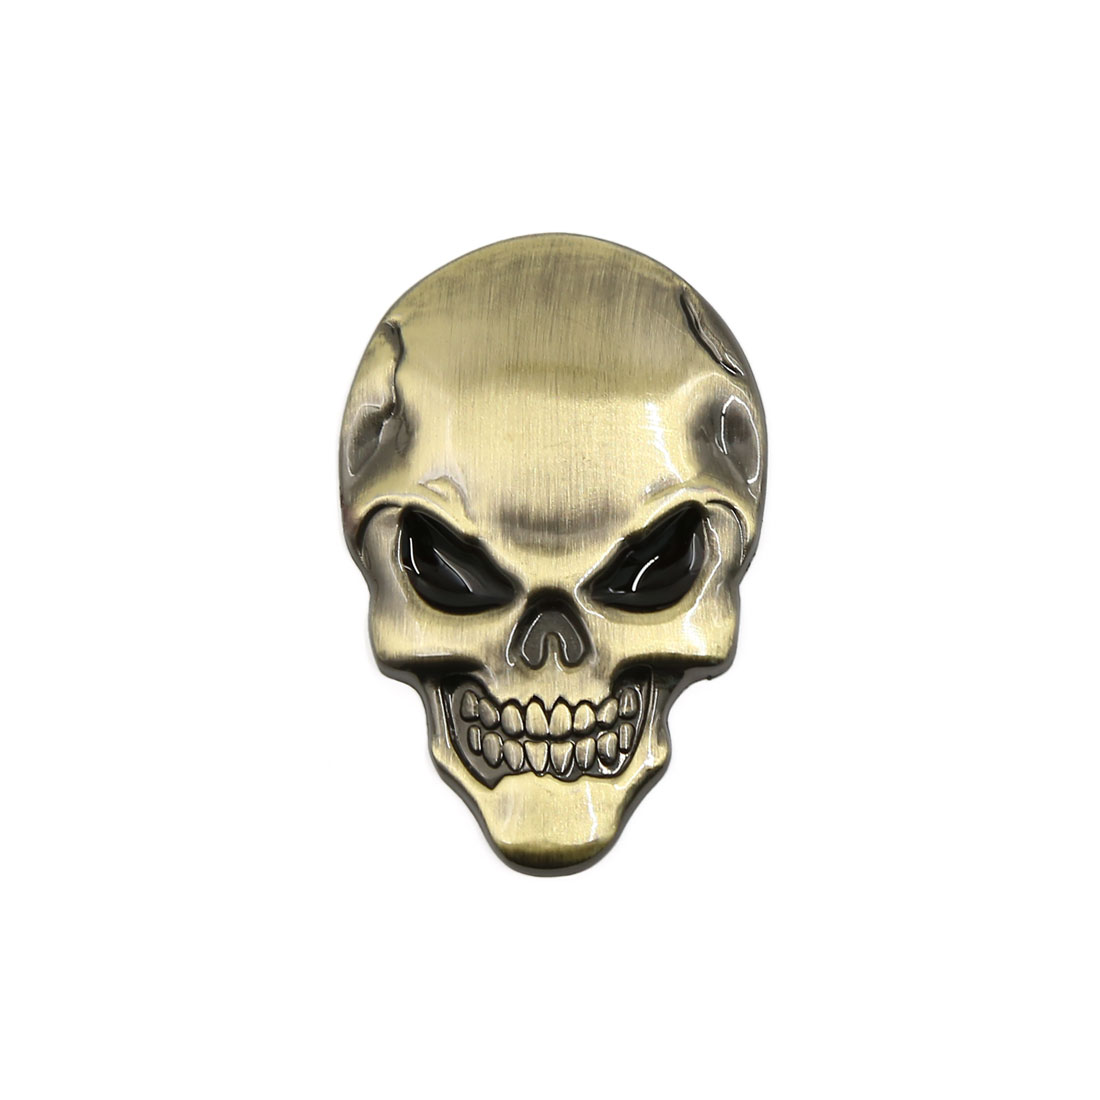 Skeleton Skull Bone Style Car Emblem Badge Decal 3D Sticker Decor Gold Tone